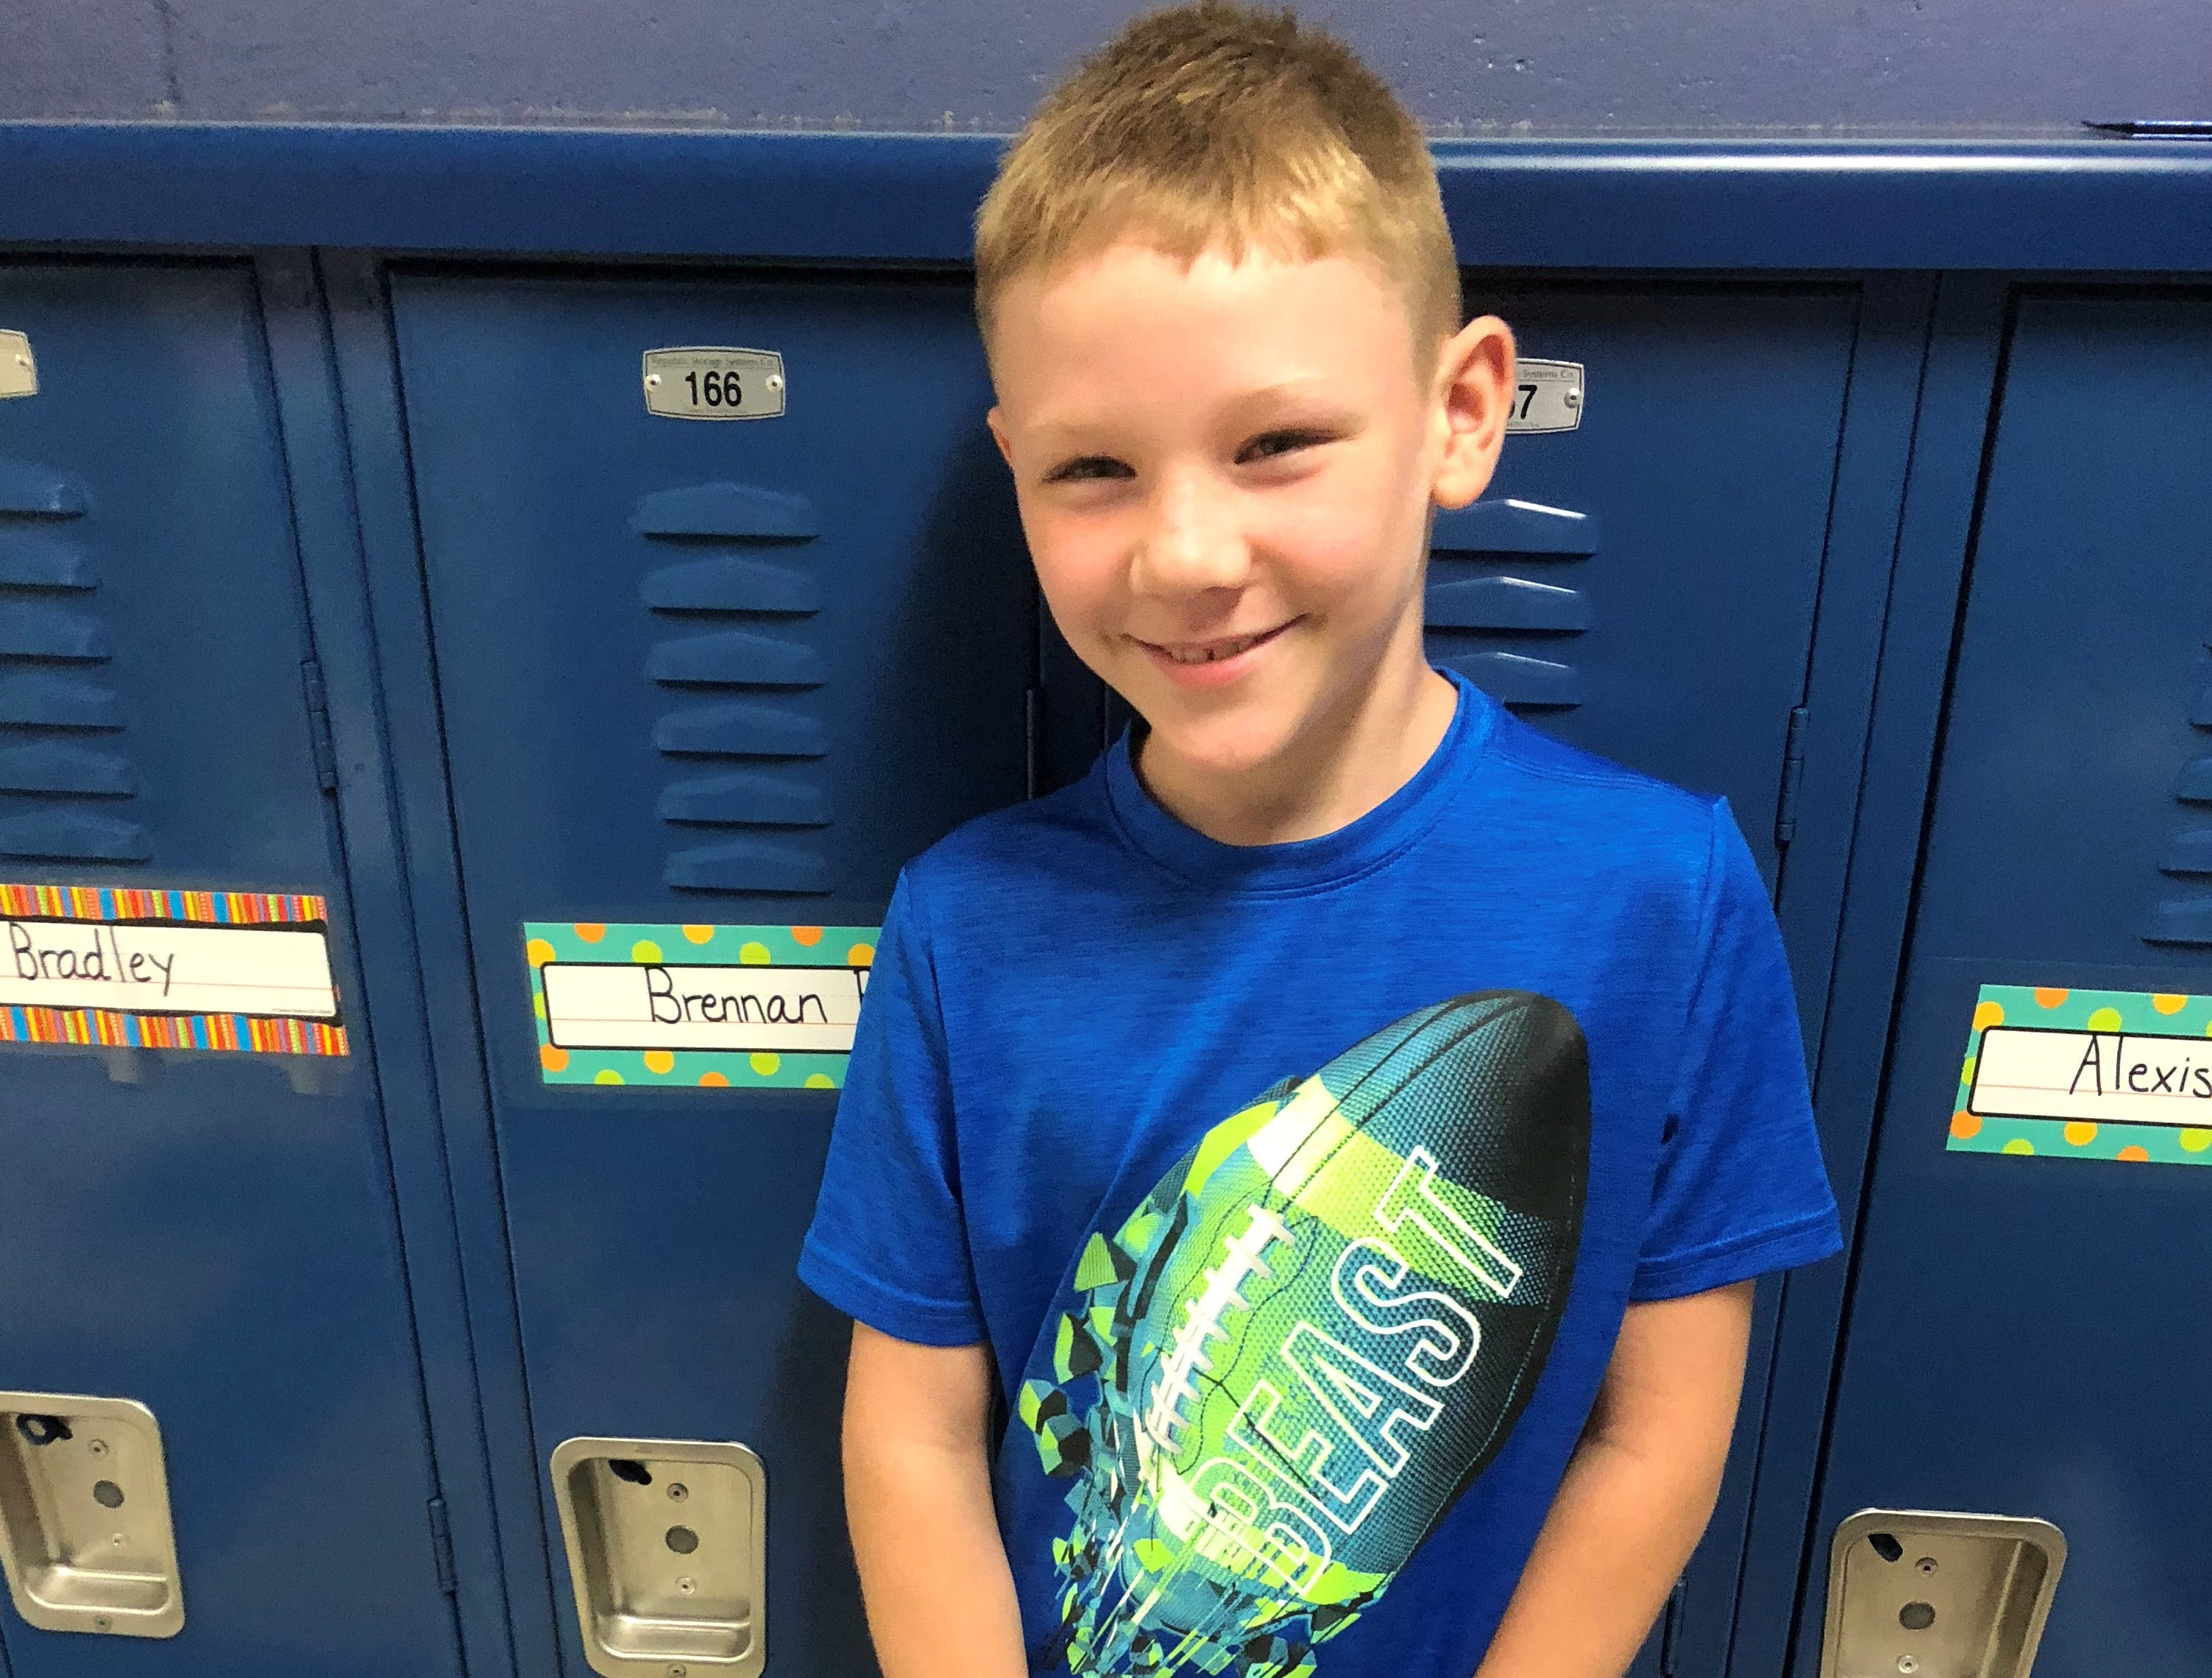 Brennan is in third grade at Madison Elementary School in Marshfield.